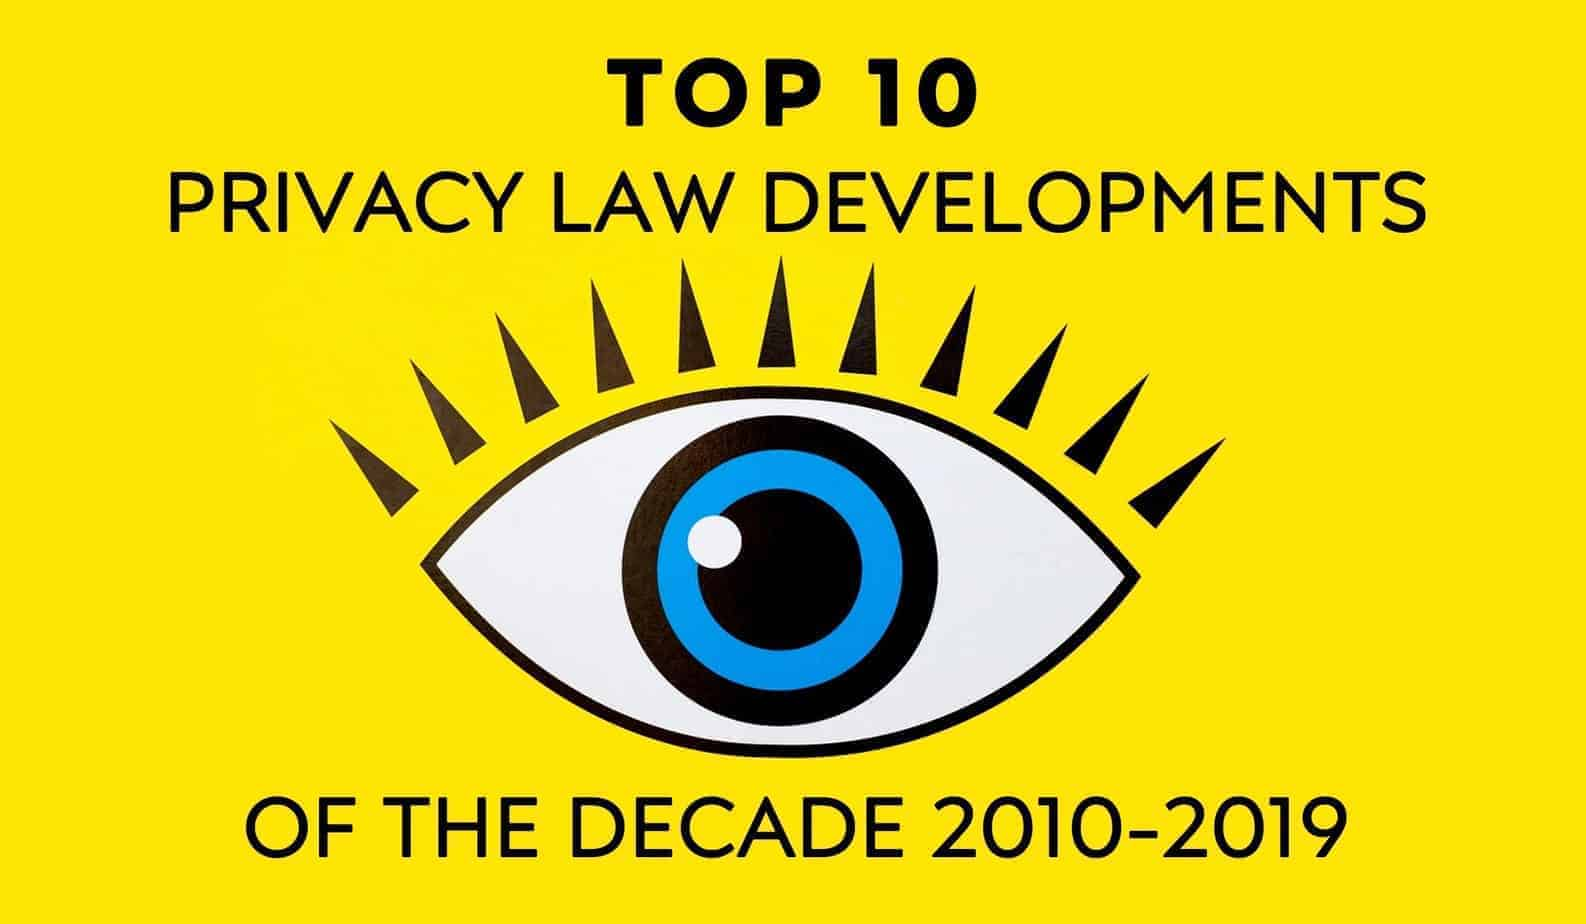 Top 10 Privacy Law Developments of the Decade 2010-2019 02